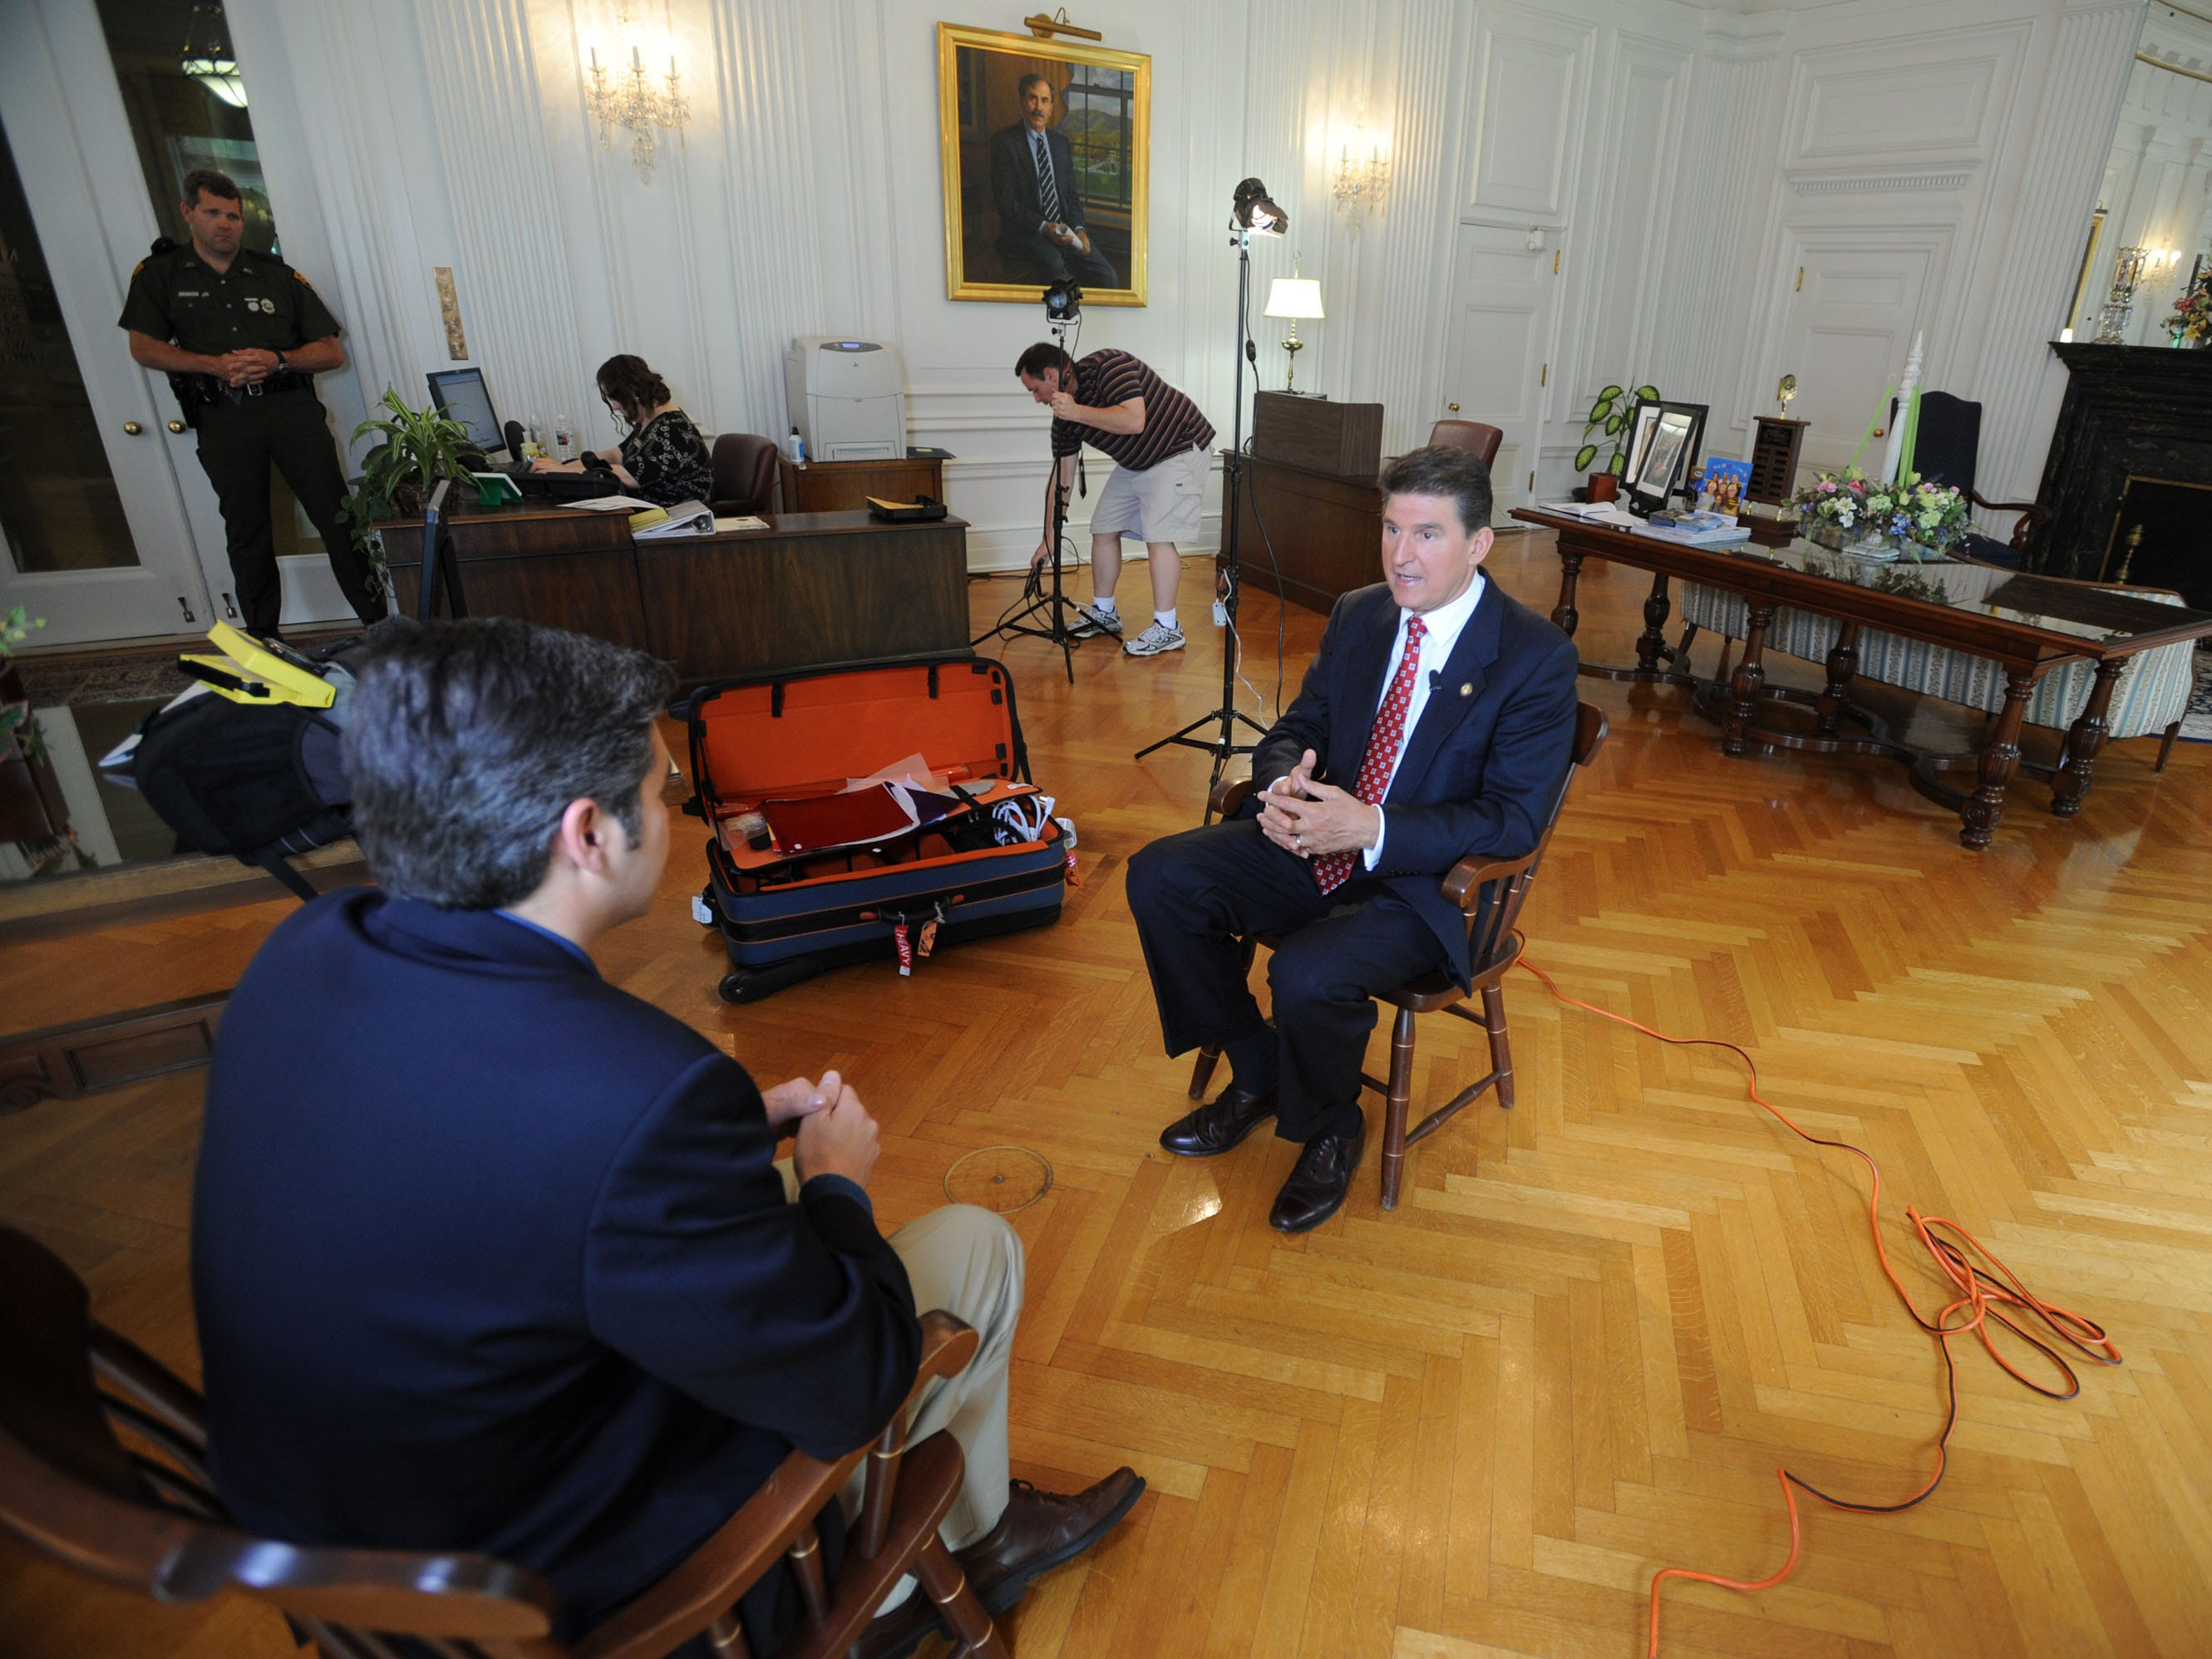 Set up for the West Virginia Primary --  West Virginia Gov. Joe Manchin sits for an interview with CNN's Jim Acosta, left,  outside his office at the Capitol Tuesday, May 6, 2008 in Charleston, W.Va.